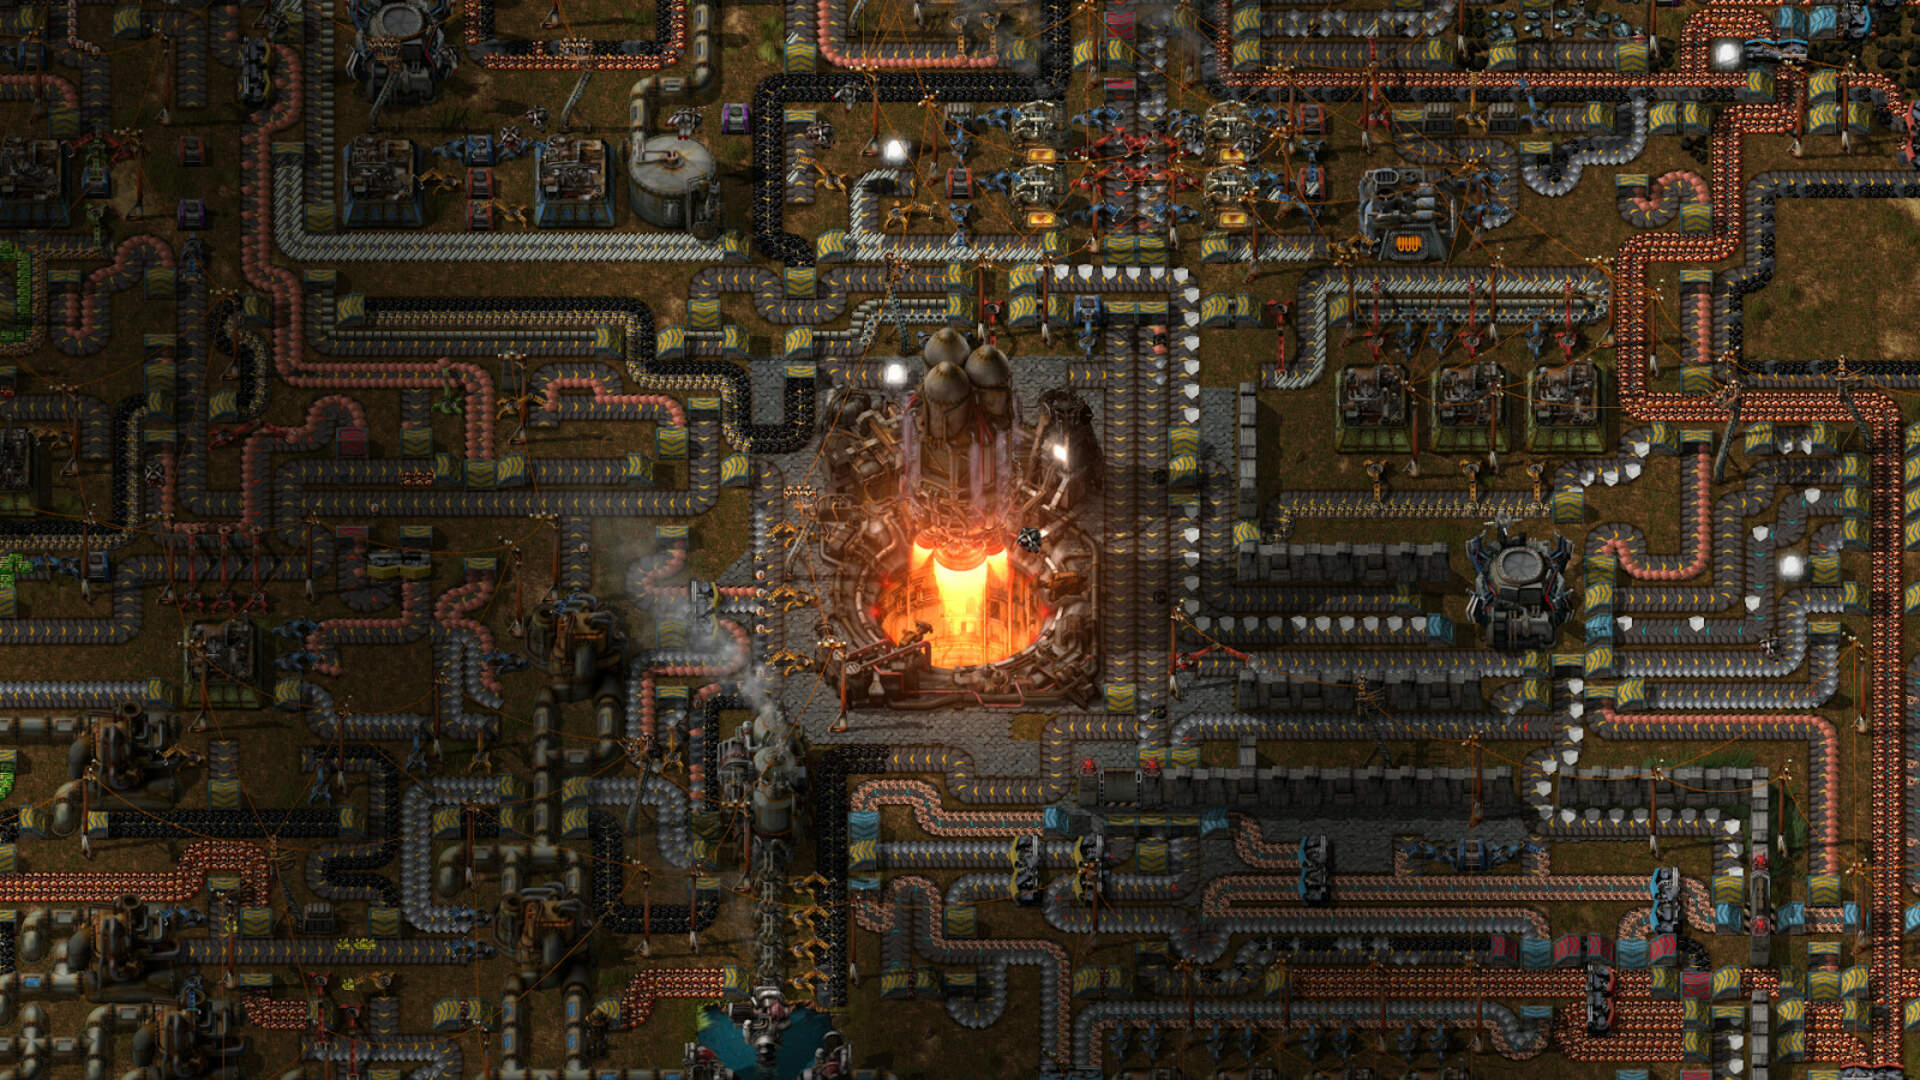 Factorio Dev Gets $39,600 From G2A as a Make-Good For Stolen Key Sales